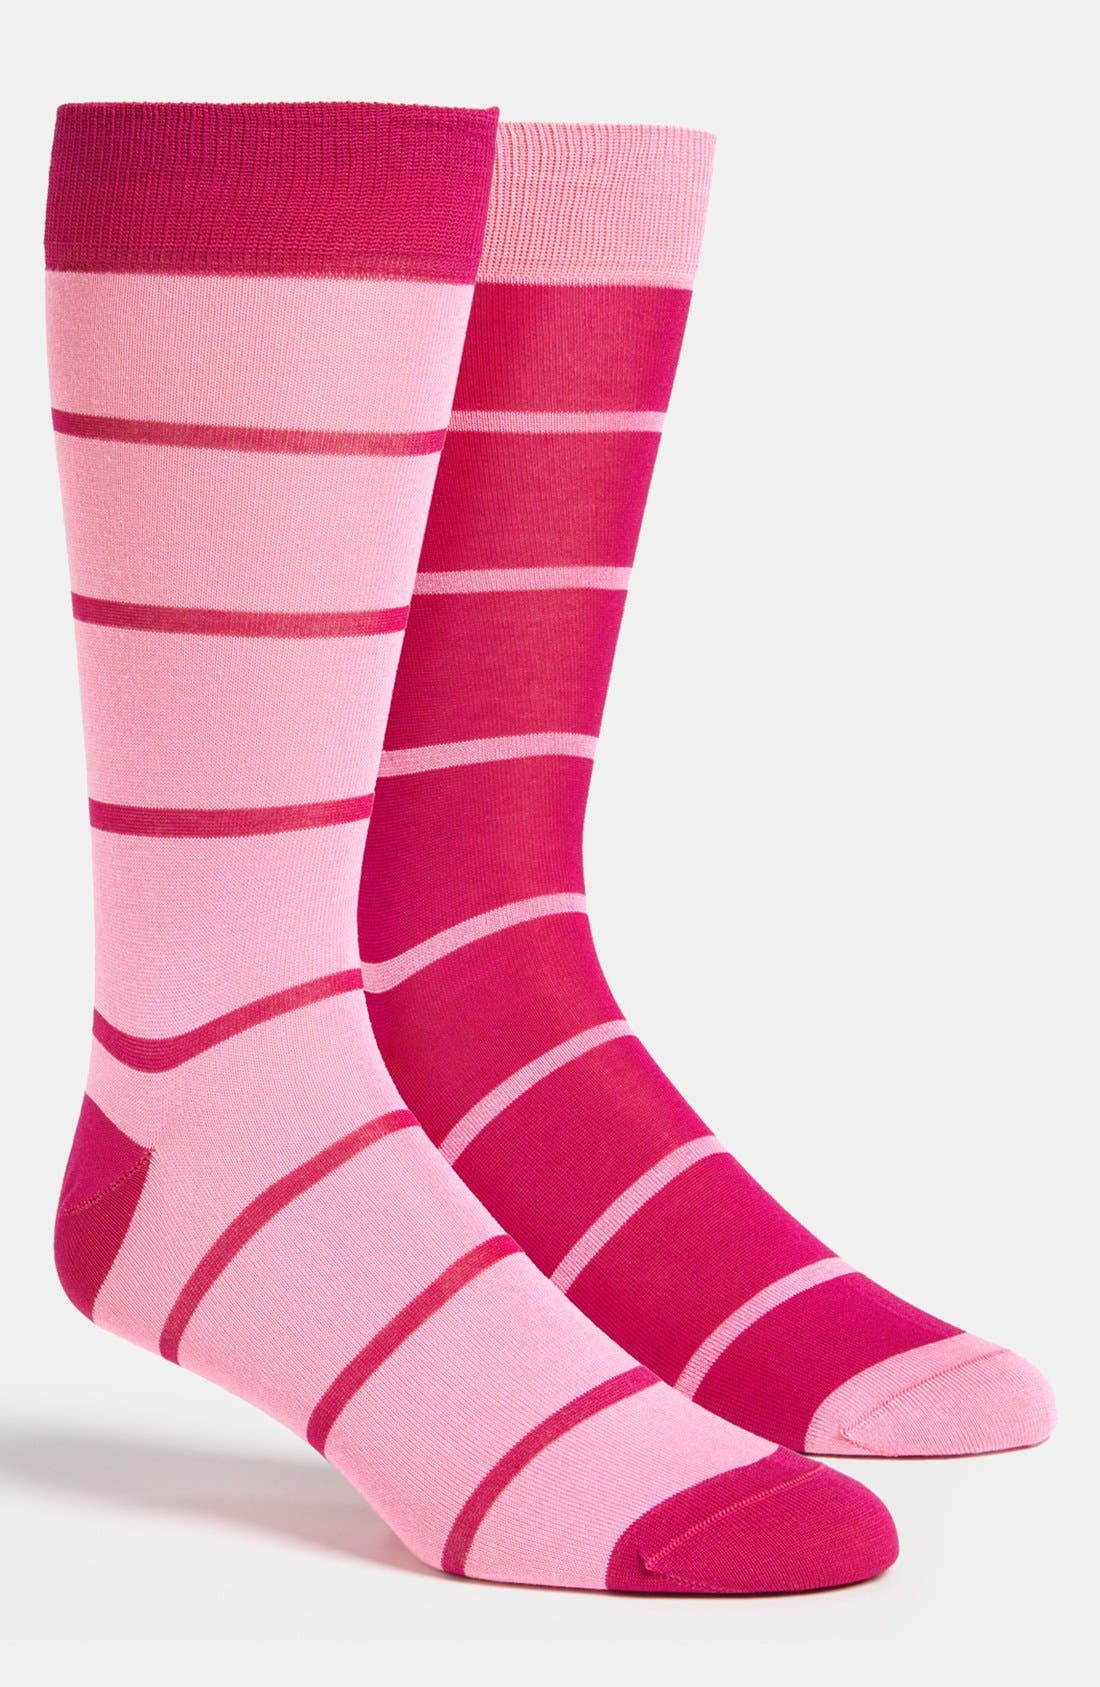 Main Image - Marcoliani 'Left & Right' Socks